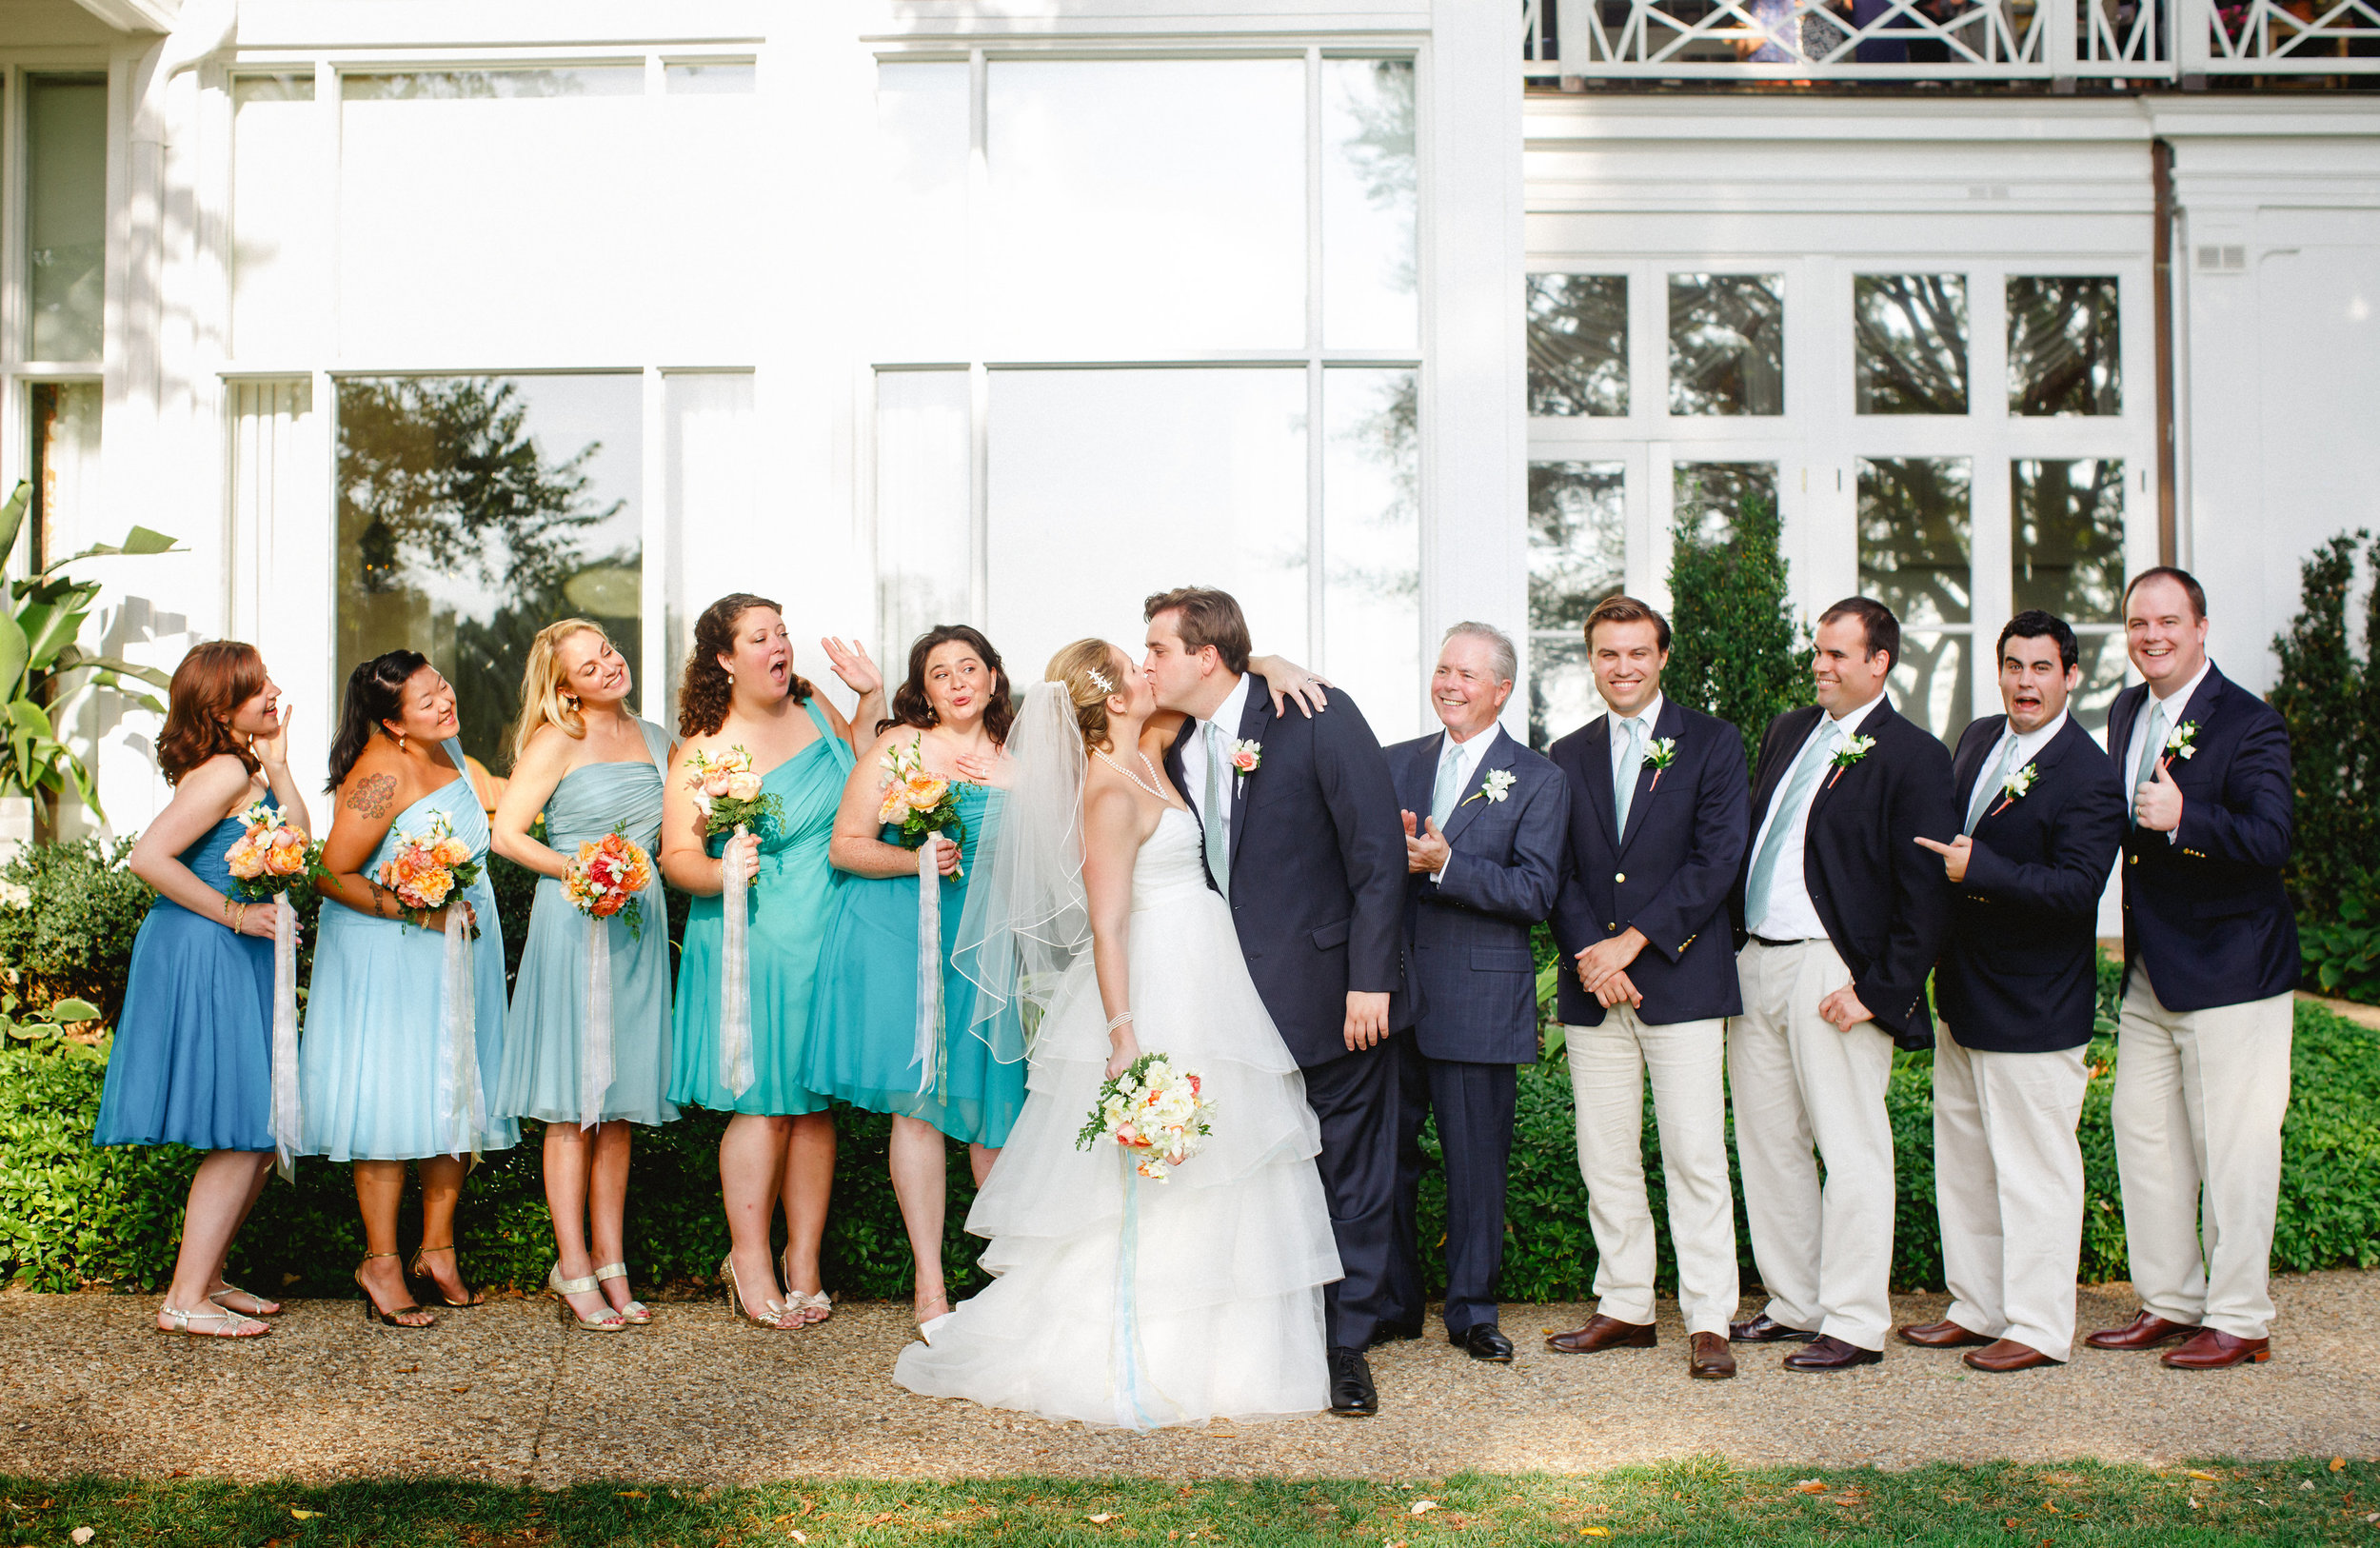 Vness-Photography-Chevy-Chase-Country-Club-A&R-Wedding-344.jpg